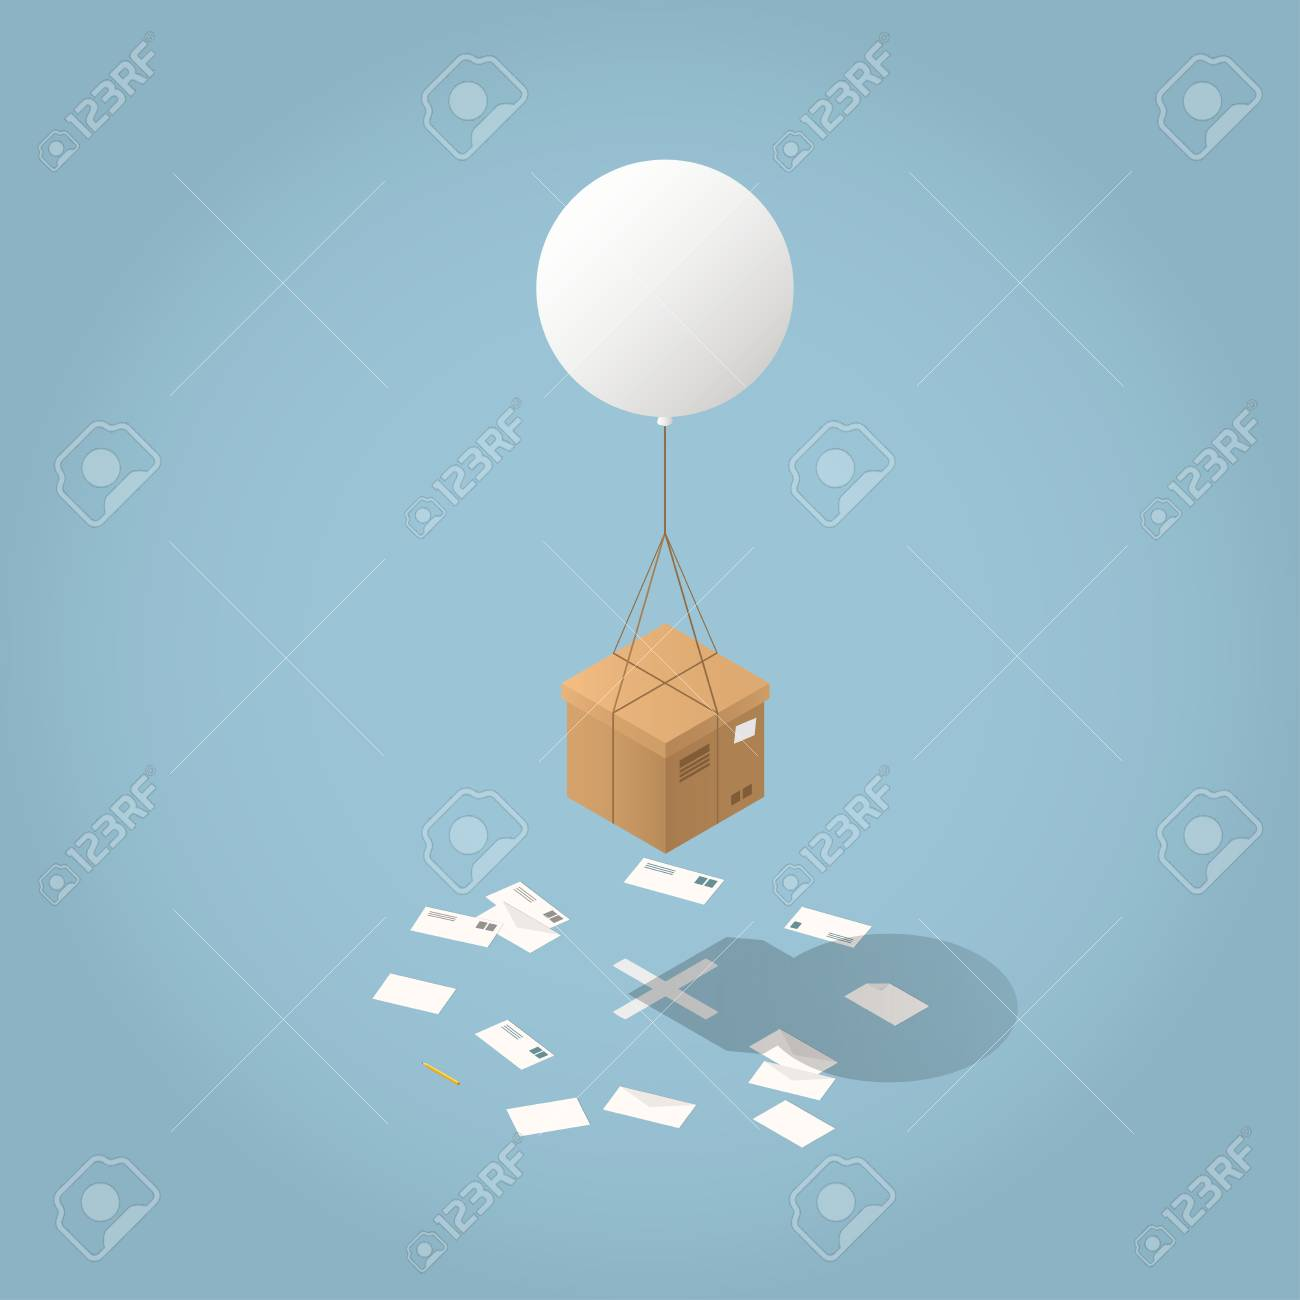 Vector isometric mail delivery concept illustration. Cardboard box are delivered by flying balloon to its destination - cross on the floor with envelopes all around. - 93963717